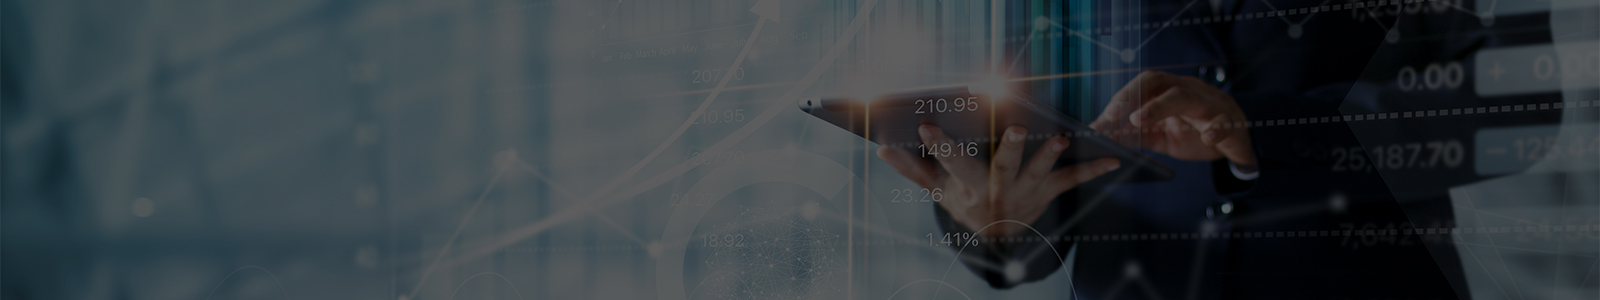 Outsourcing Financial Analysis Services